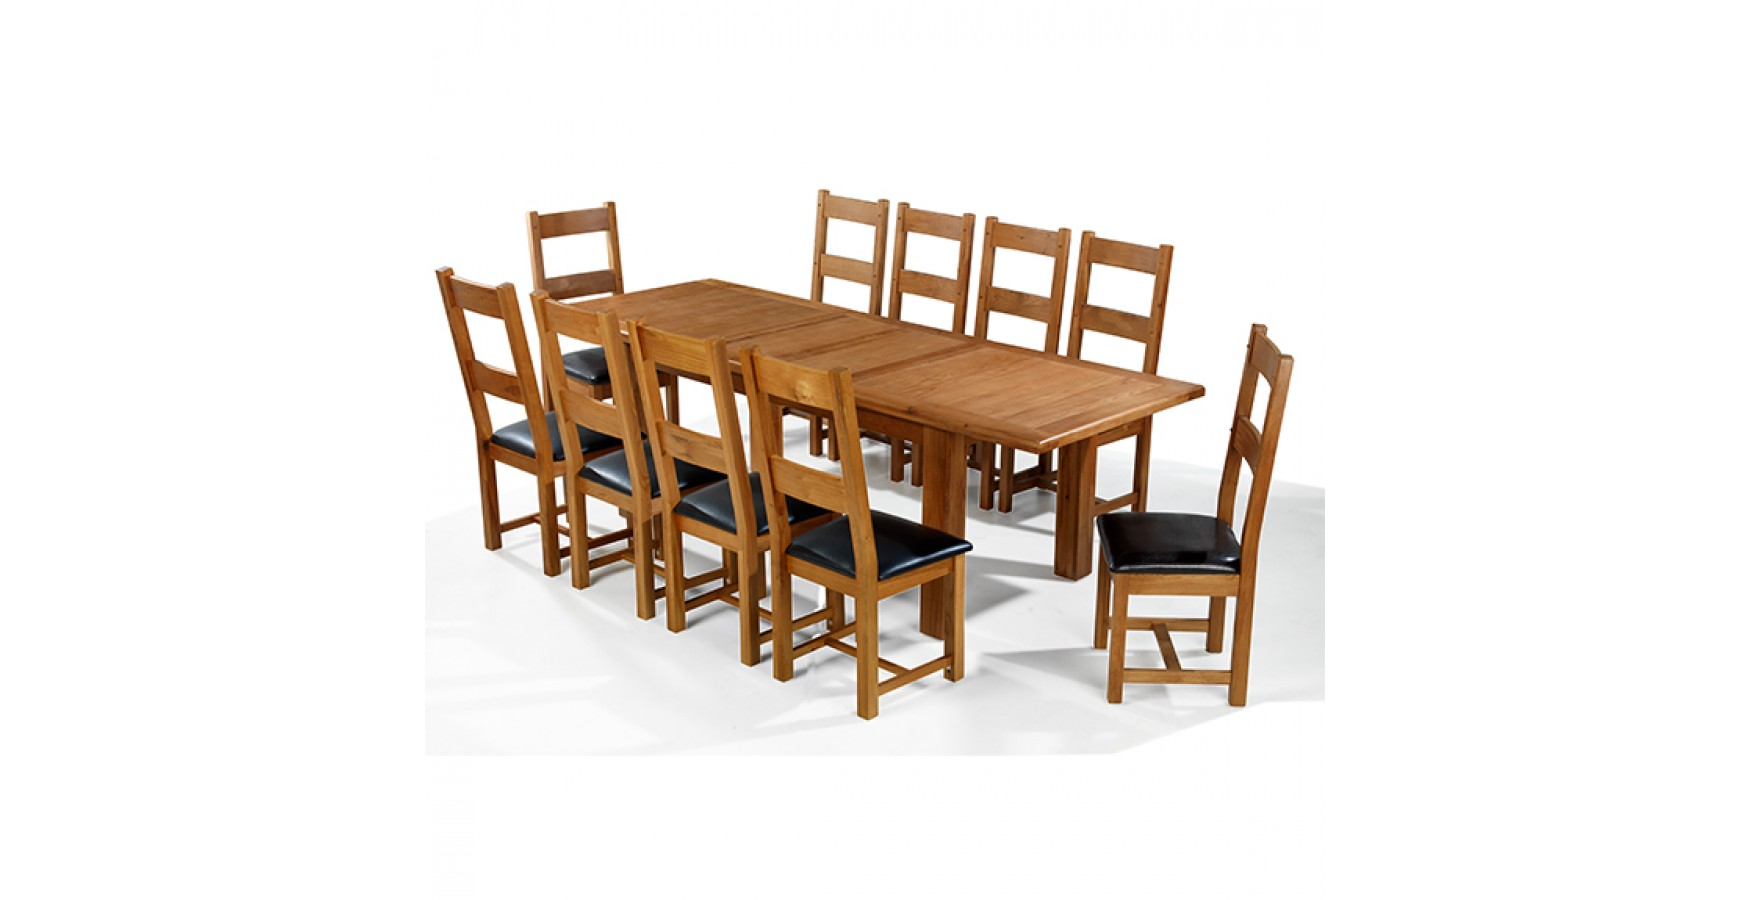 Very Impressive portraiture of oak dining table and chairs picture with #774117 color and 1750x900 pixels